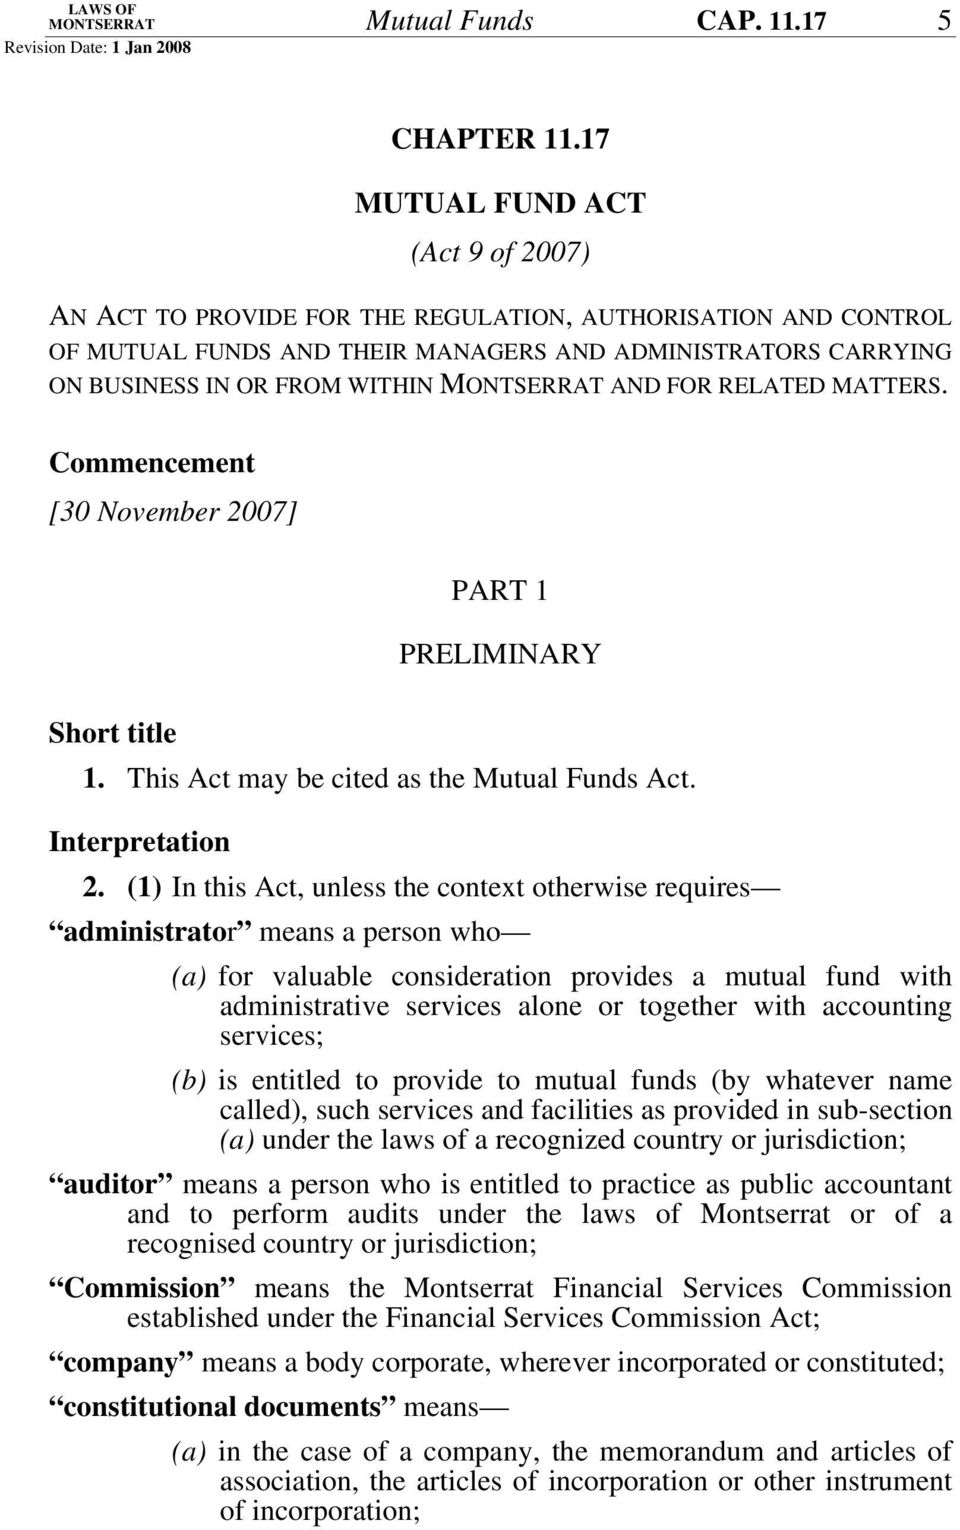 RELATED MATTERS. Commencement [30 November 2007] PART 1 PRELIMINARY Short title 1. This Act may be cited as the Mutual Funds Act. Interpretation 2.